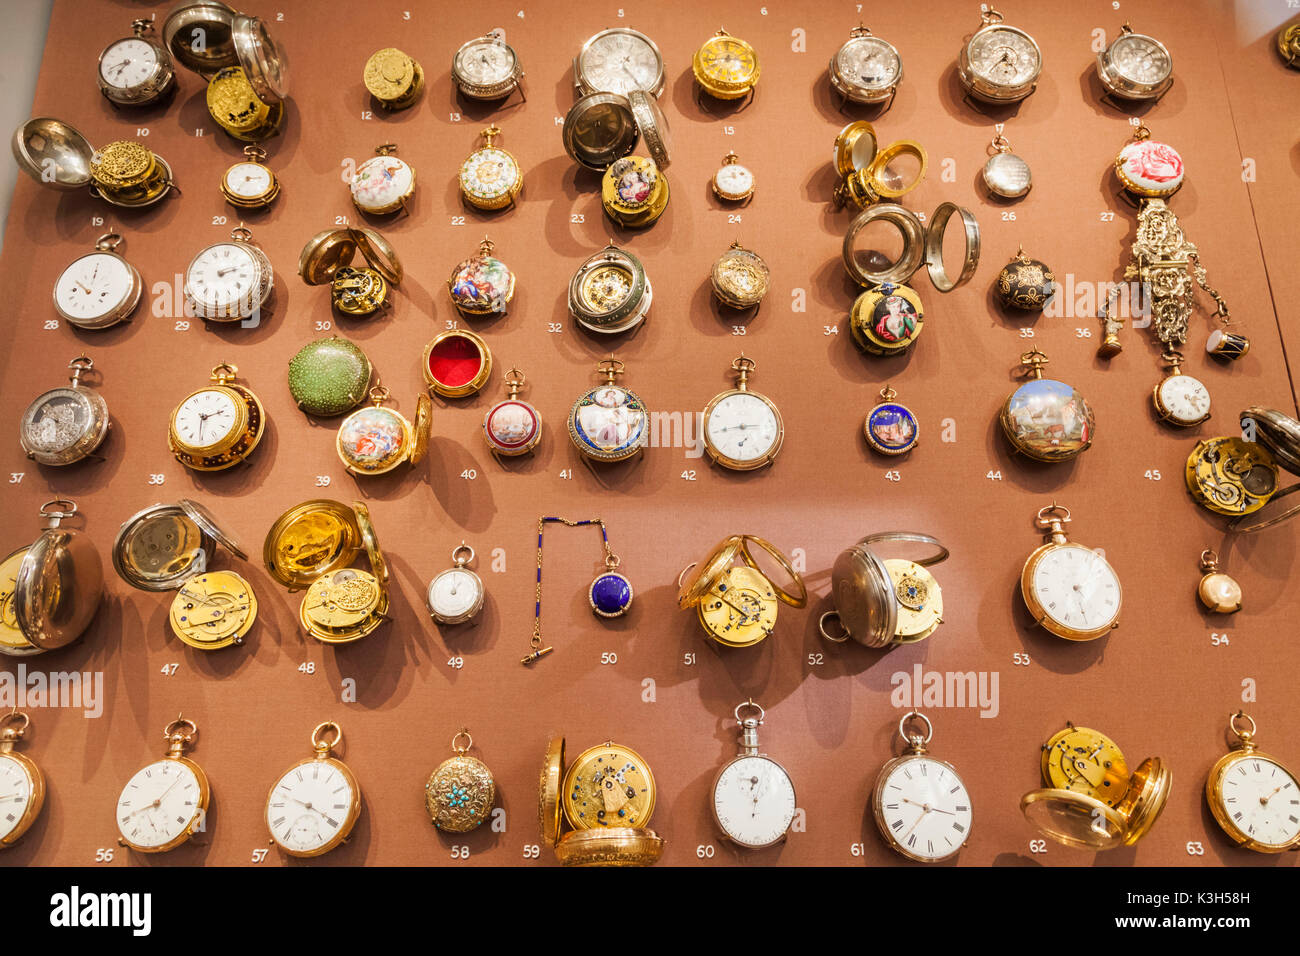 England, London, Kensington, Science Museum, Display of The Nelthropp Collection of Pocket Watches - Stock Image